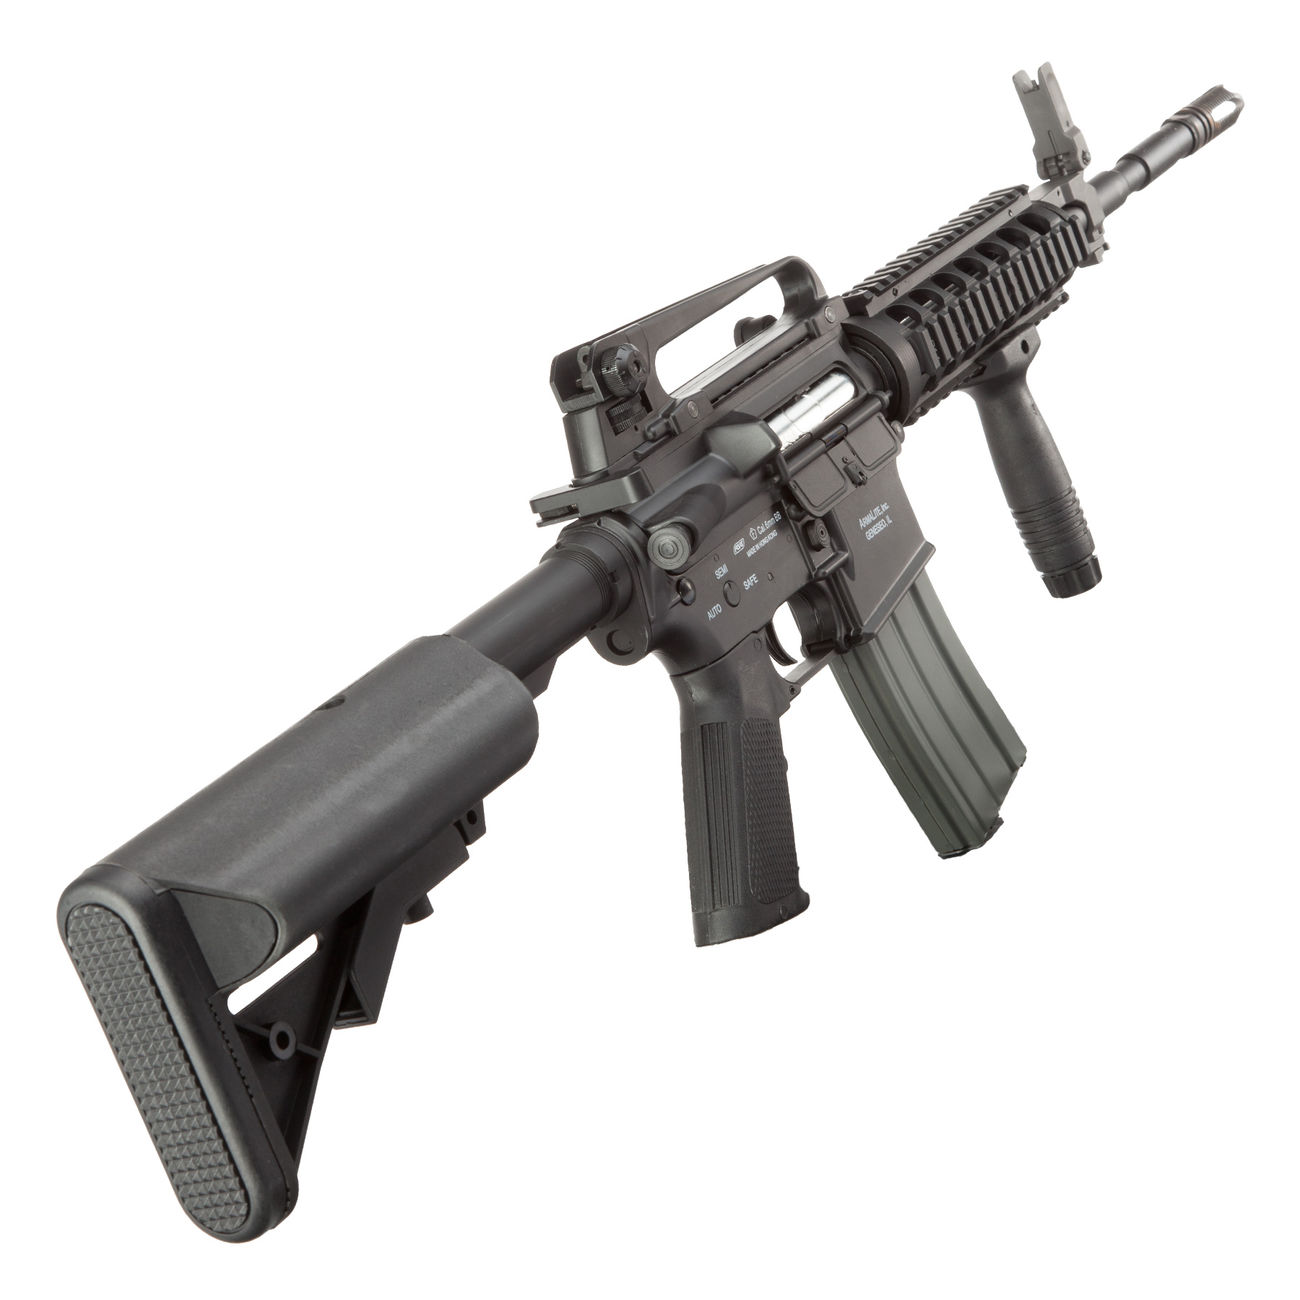 asg armalite m15a4 ris carbine sportline s aeg 6mm bb schwarz kotte zeller. Black Bedroom Furniture Sets. Home Design Ideas